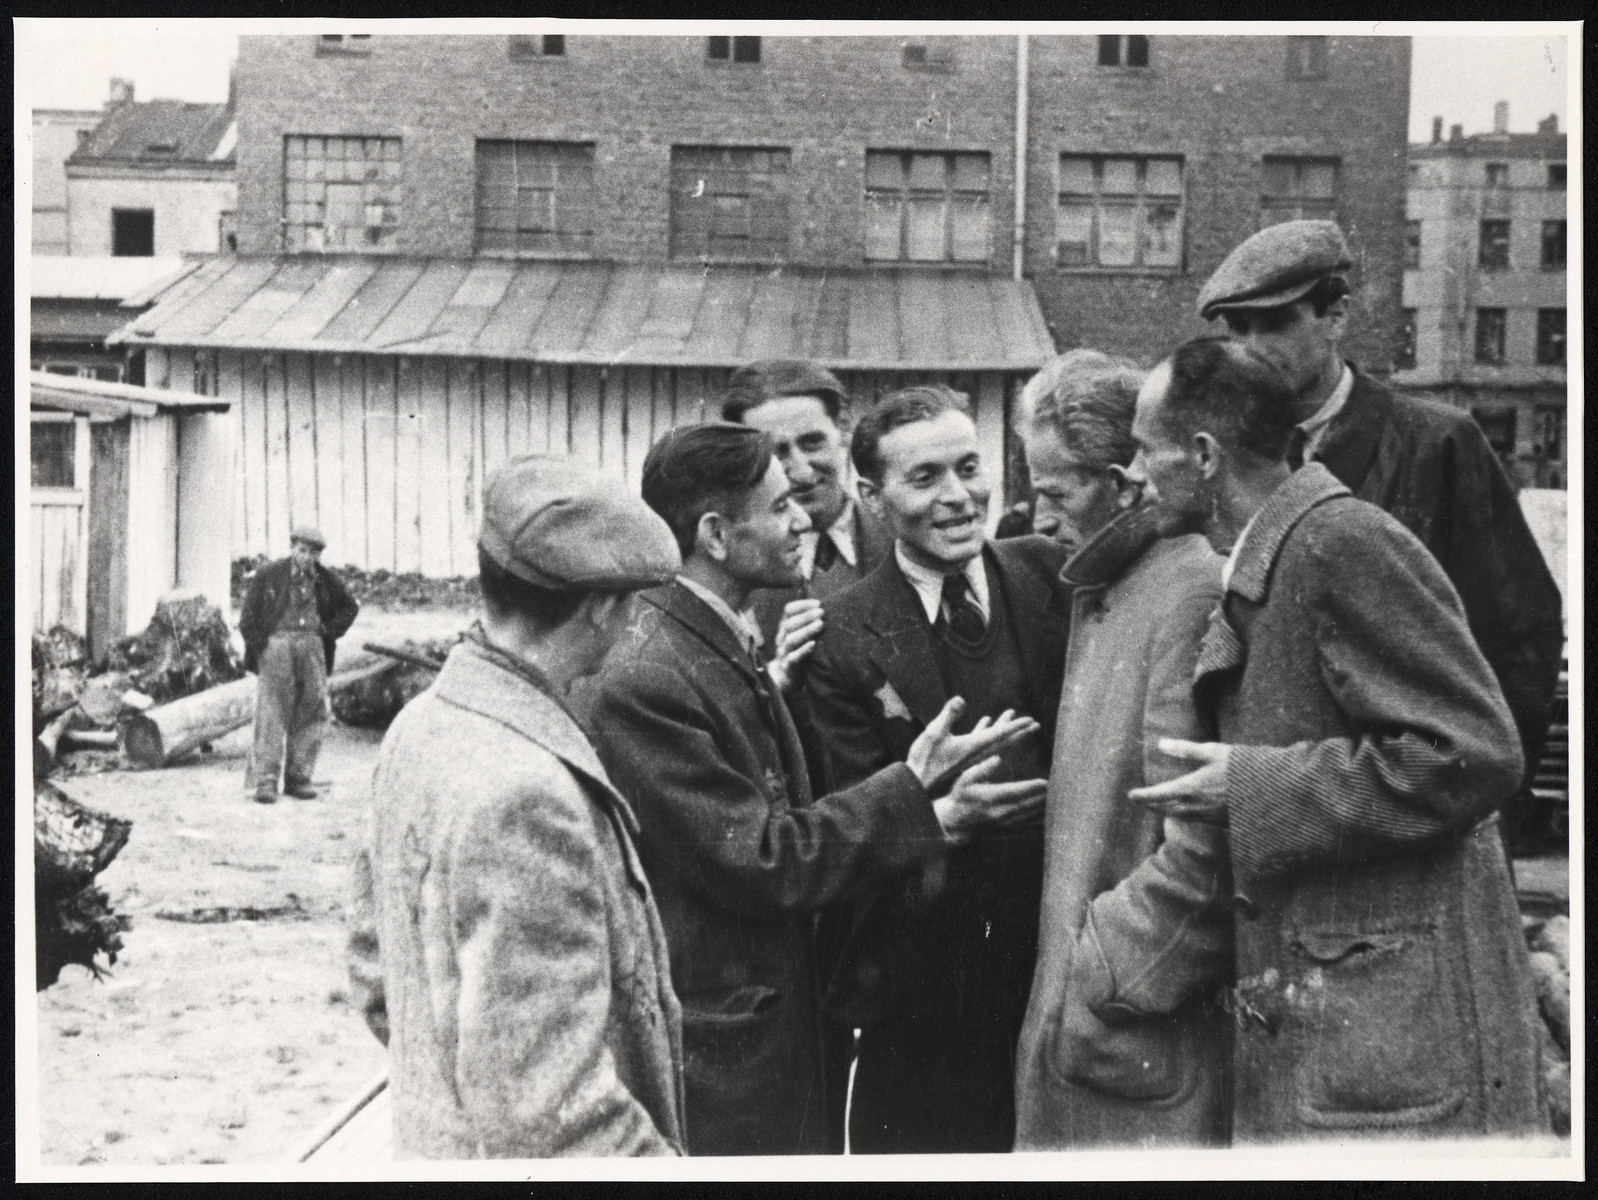 A group of Jewish men have a conversation in front of one of the ghetto factories.   Among those pictured, in the middle, is donor's husband, Pinchas Szwarc and behind him may be his brother Josef.